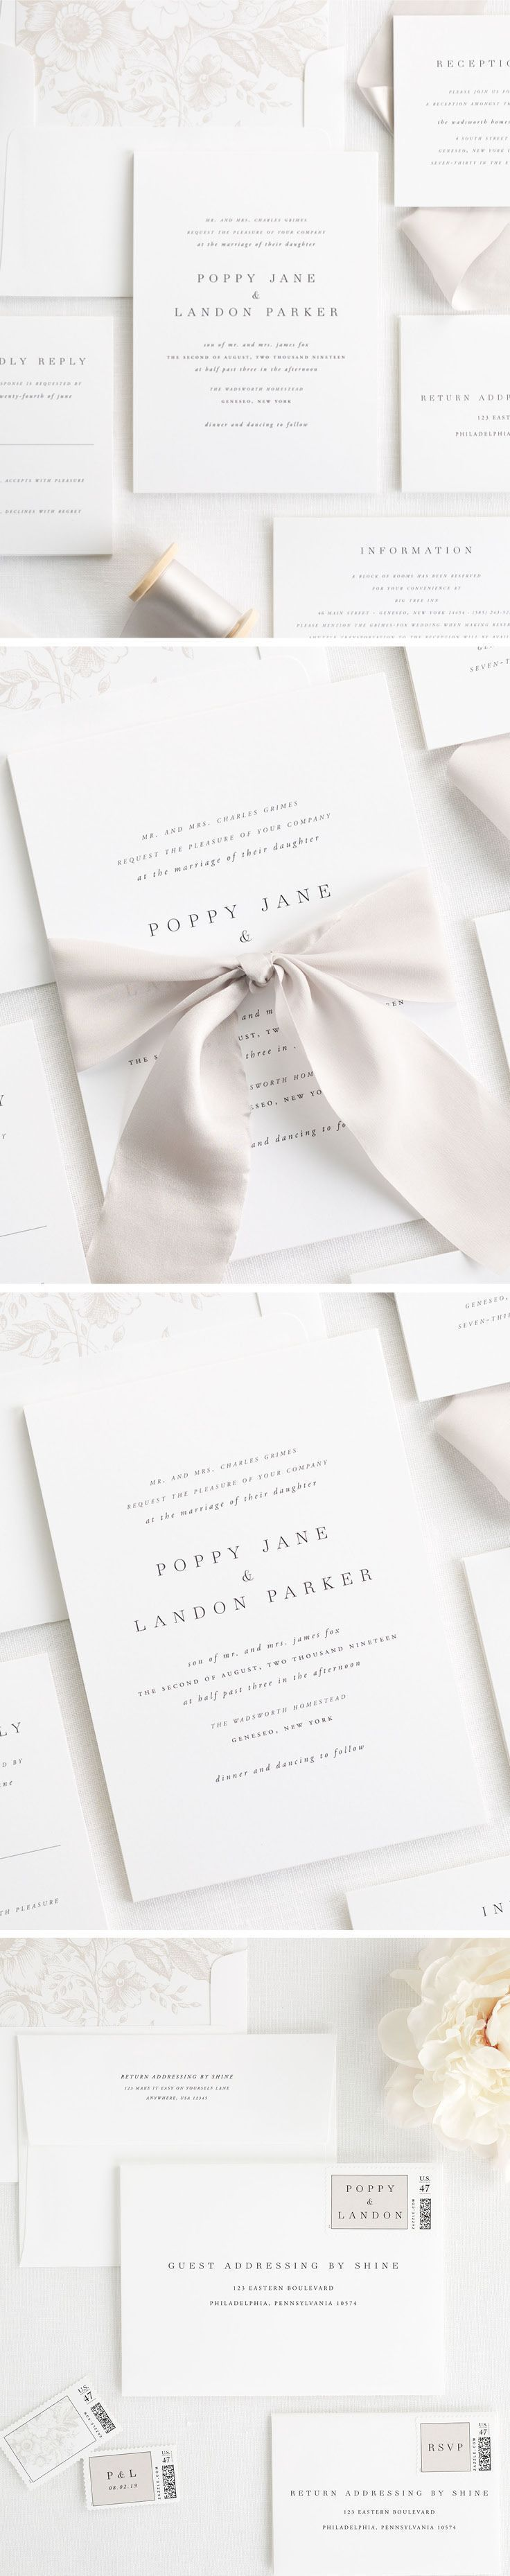 This minimalist design comes on the most luxurious cotton paper. Our Poppy wedding invitations can be customized with different pattern liners and over 40 ink colors. Create your perfect look with a custom dyed 100% silk ribbon in mink, custom designed stamps and a floral envelope liner.